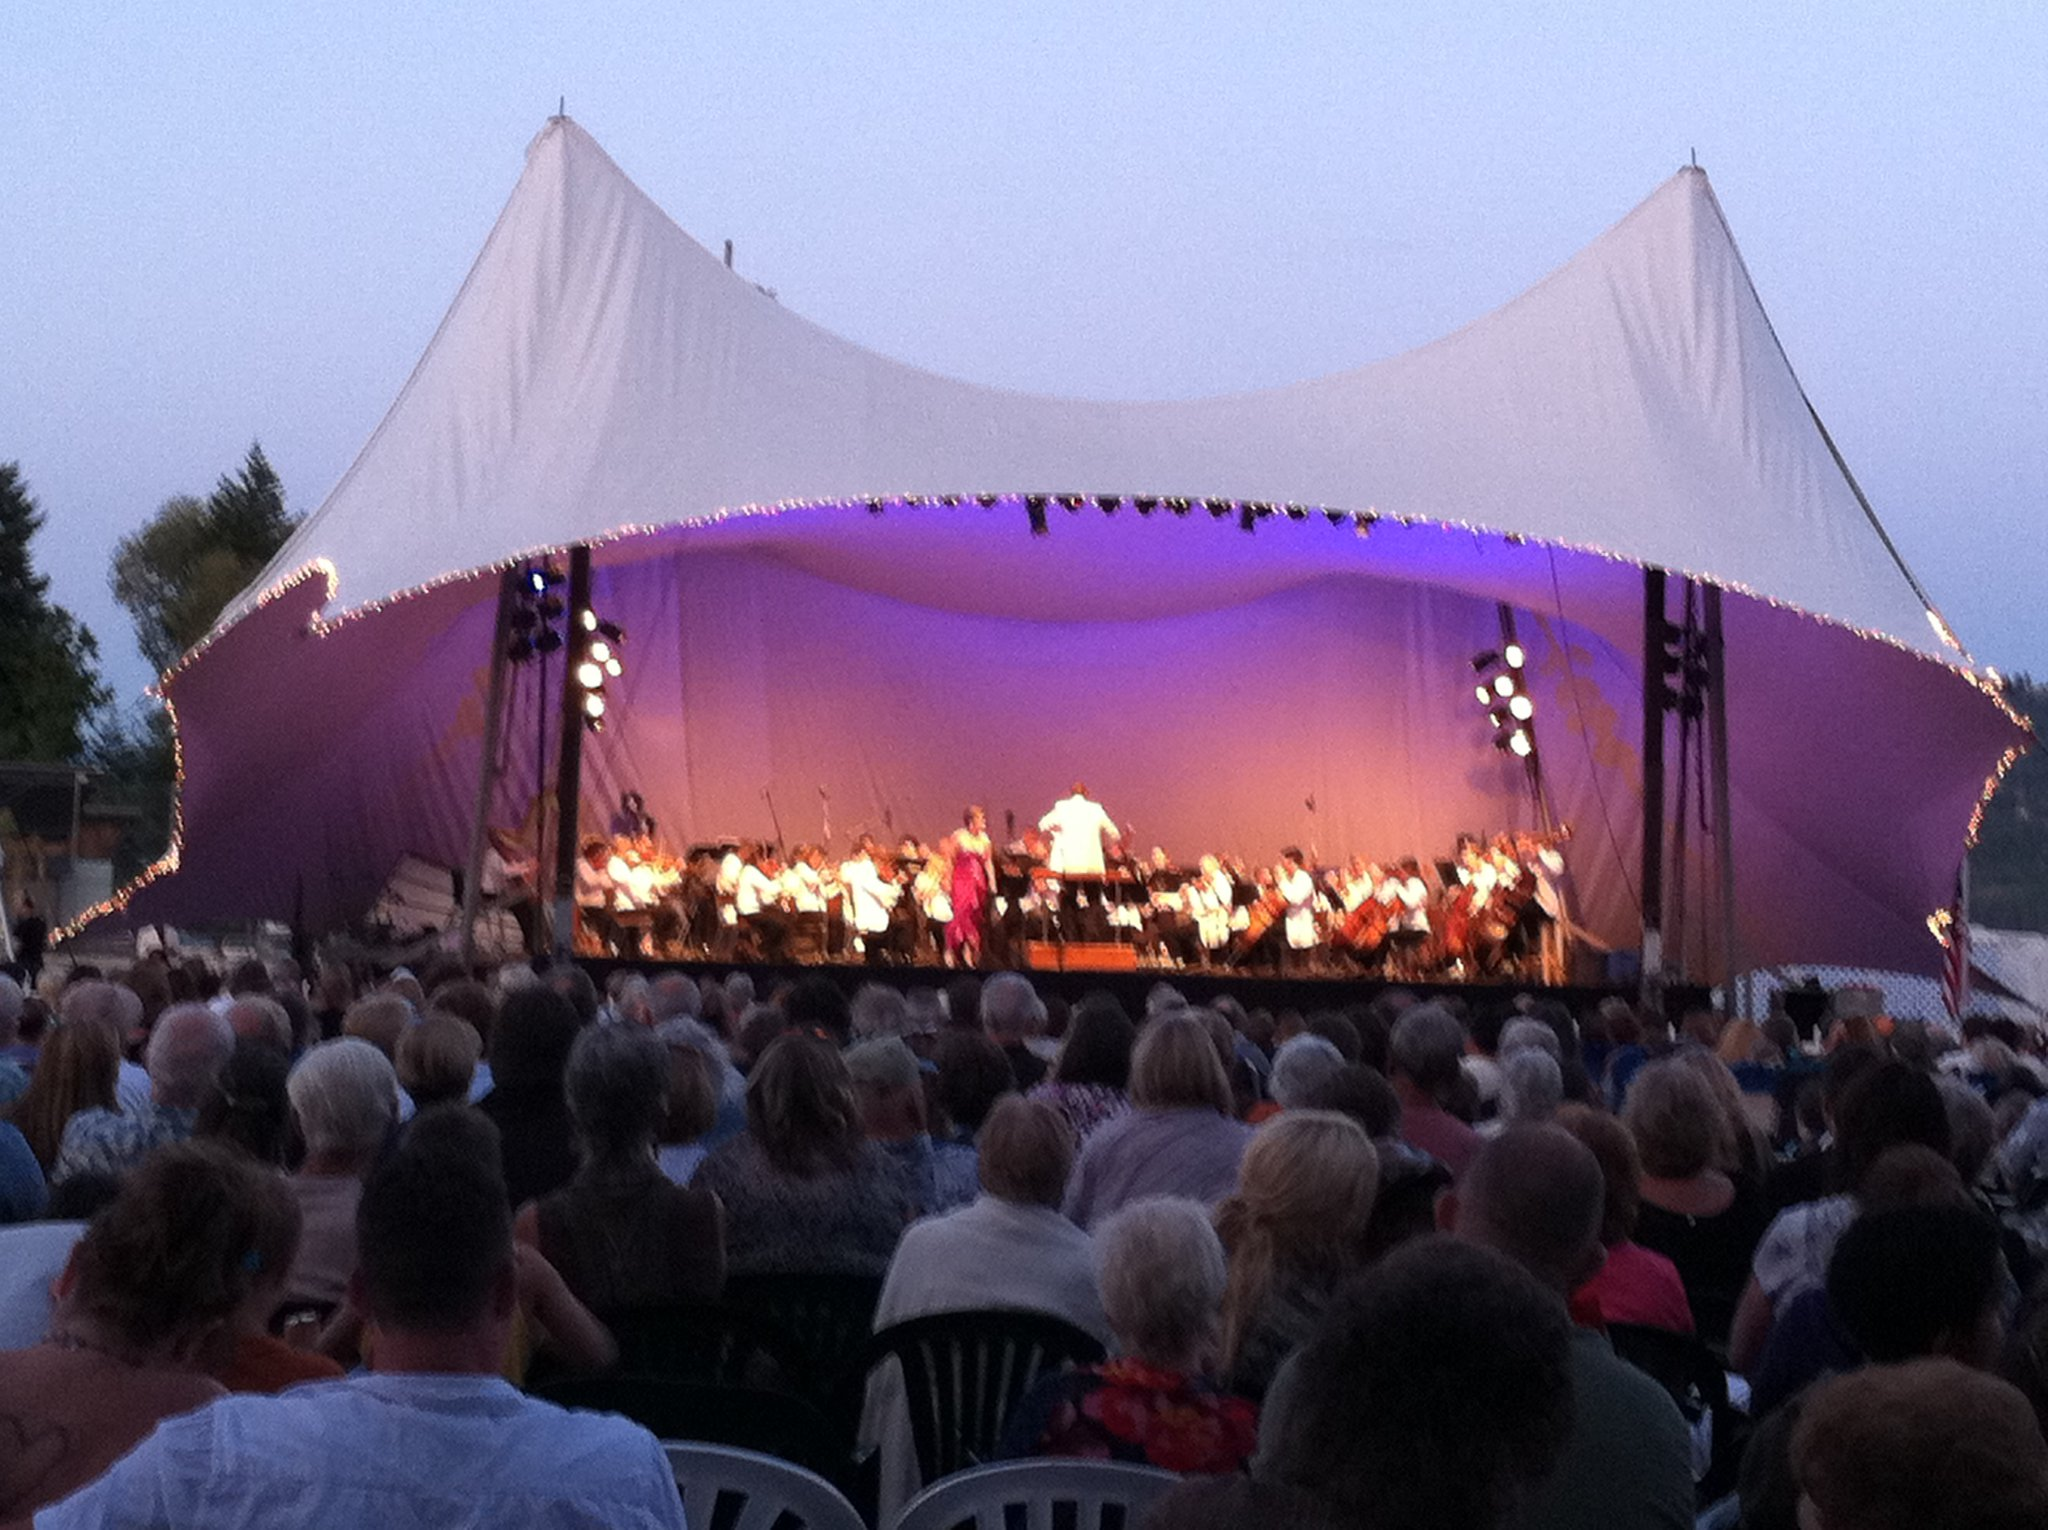 Arias with the Spokane Symphony at the Festival at Sandpoint, August 2011